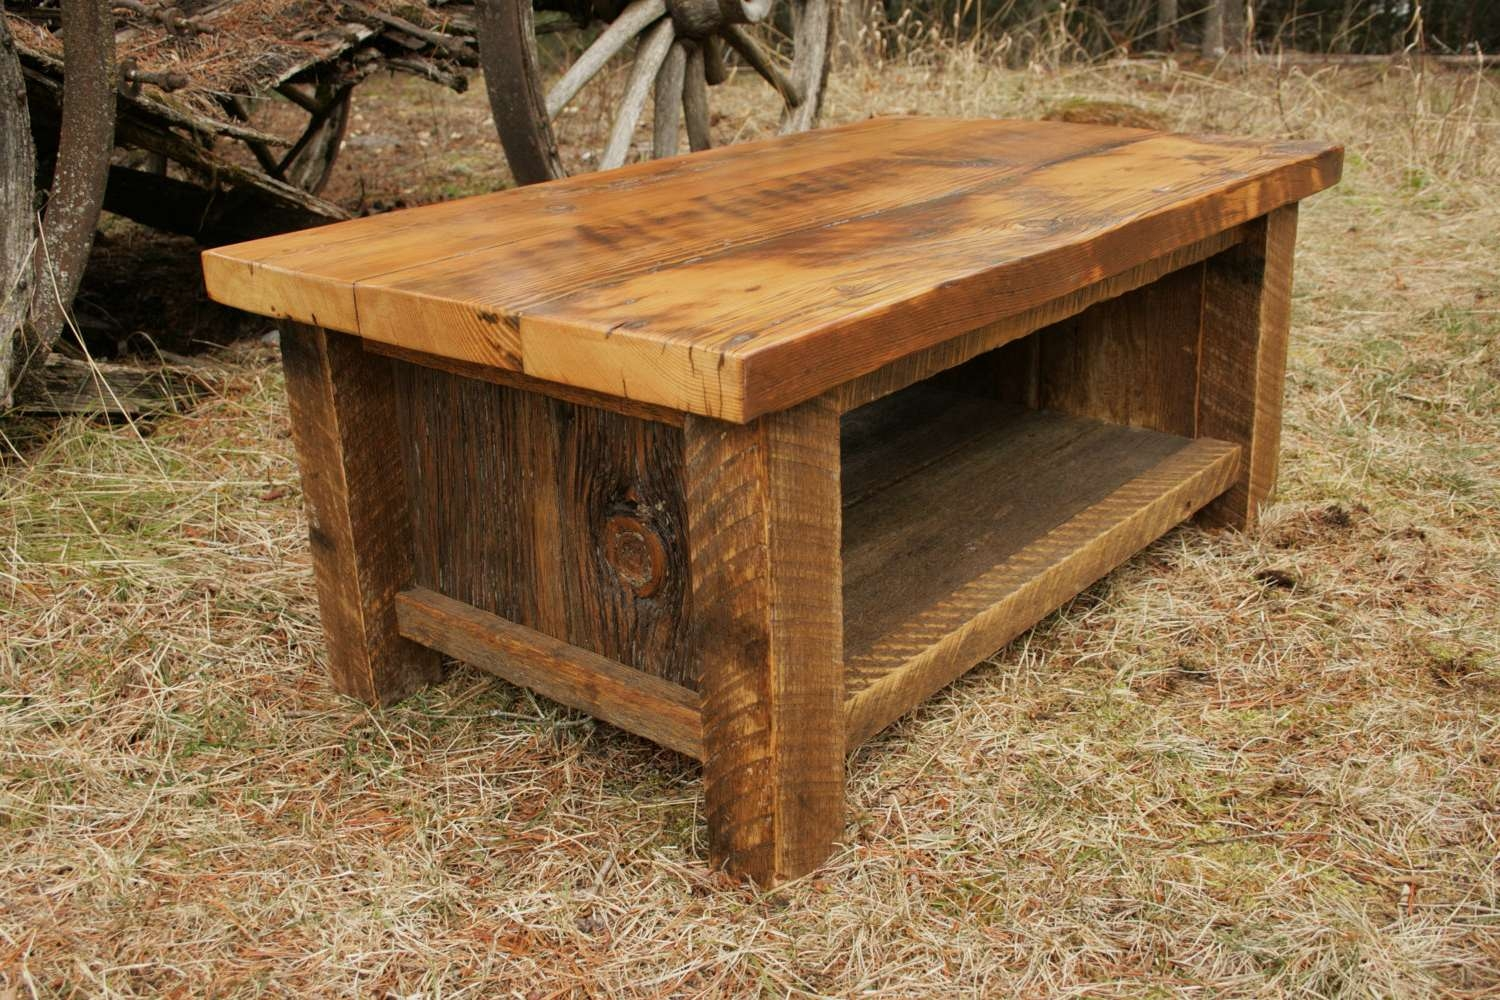 Barnwood Furniture With Widely Used Rustic Barnwood Coffee Tables (View 2 of 20)